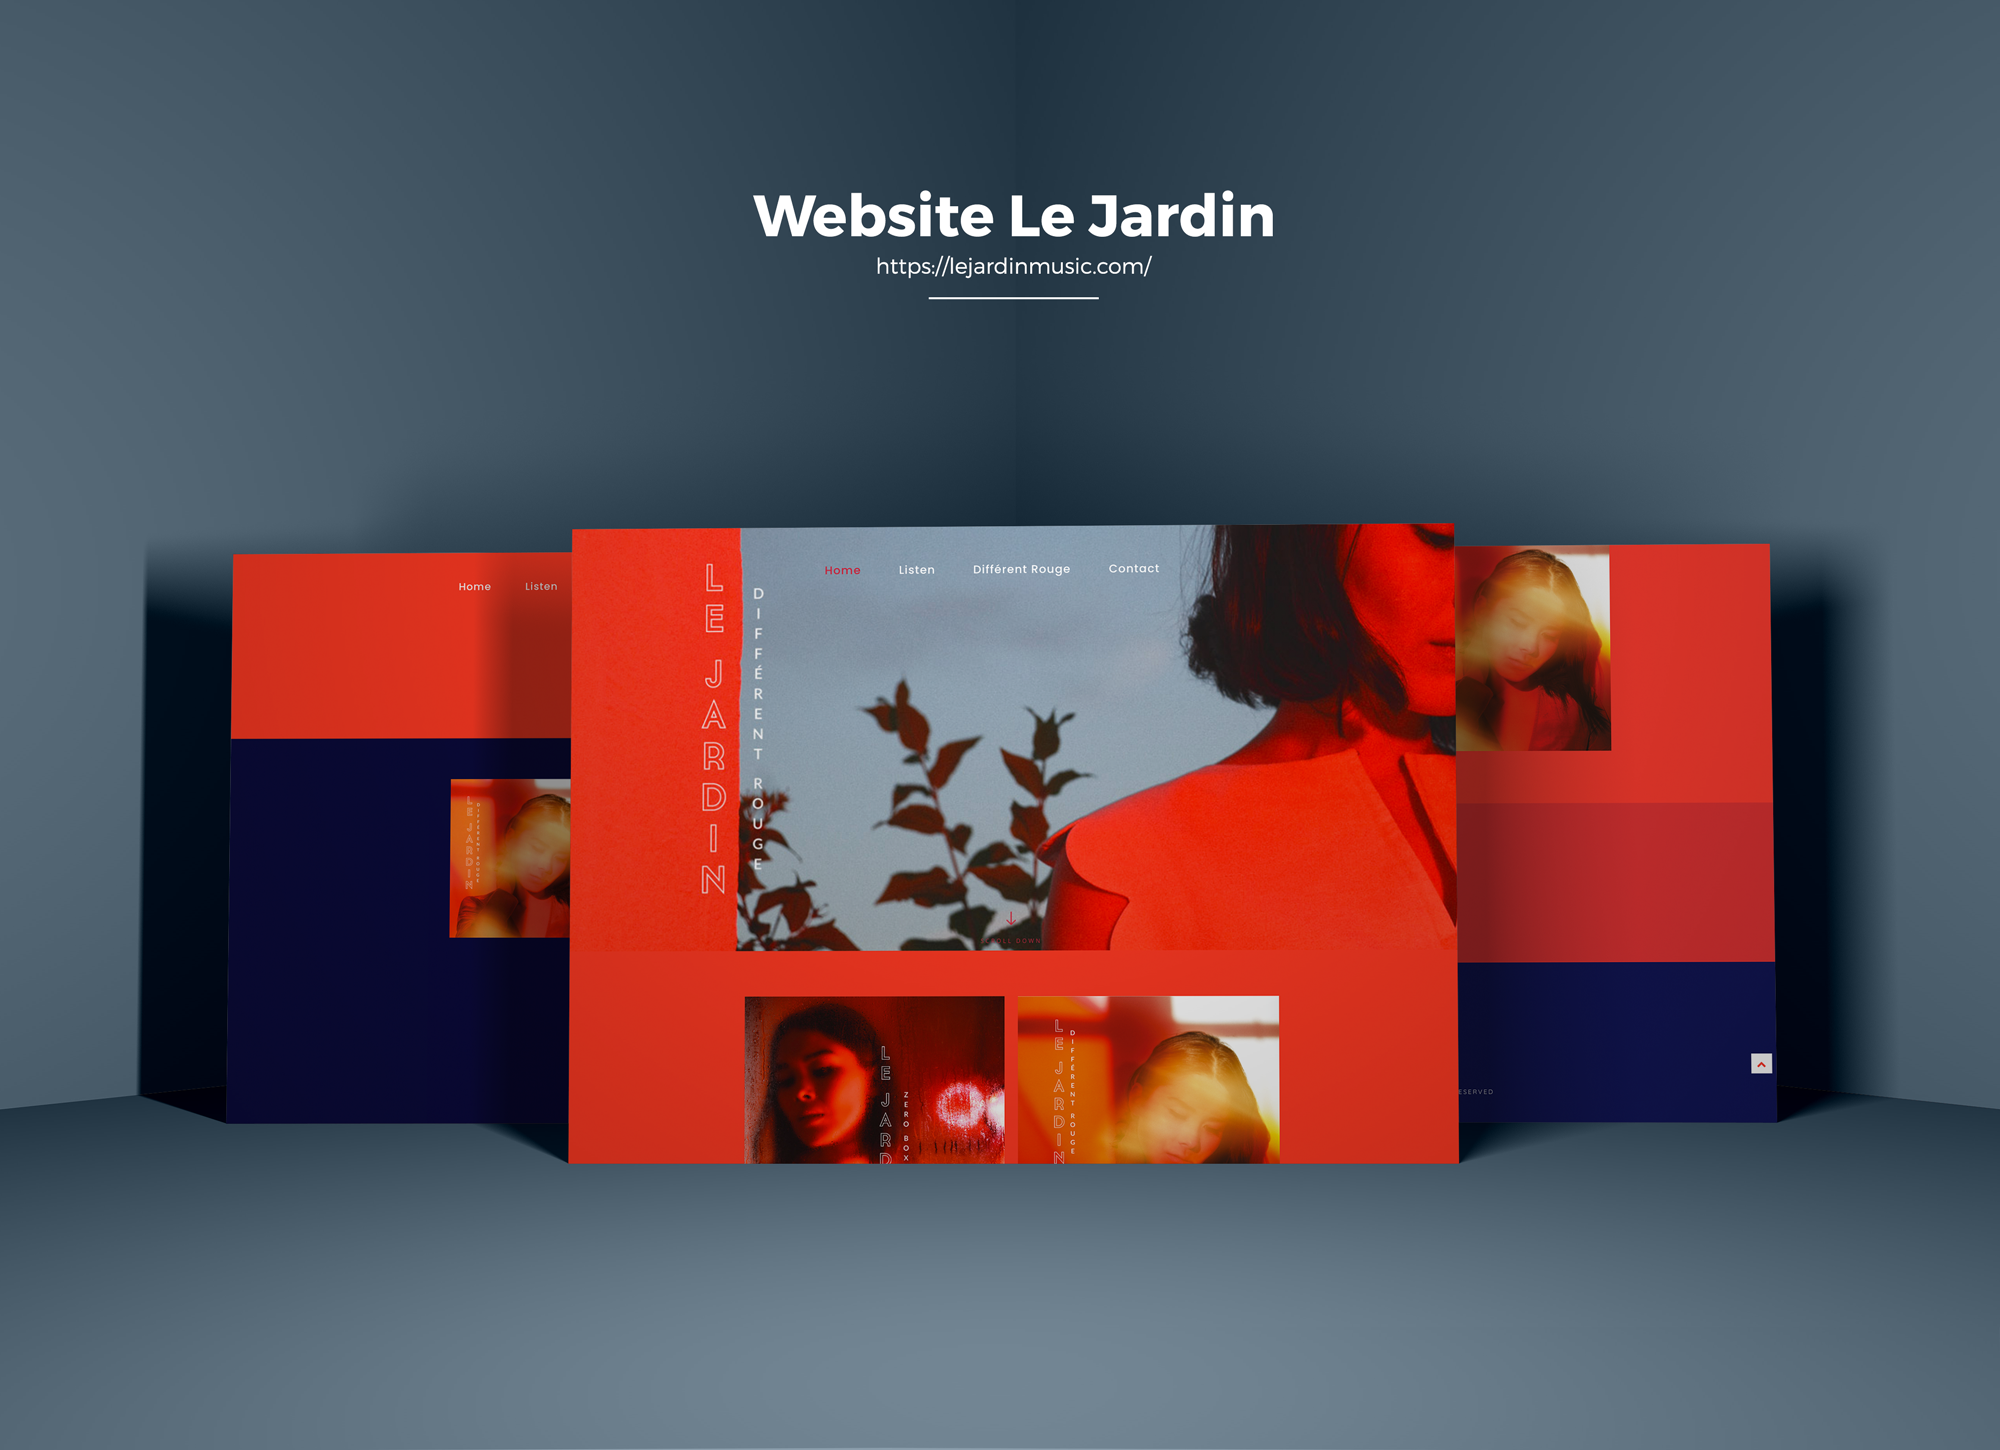 website-lejardin-mockup